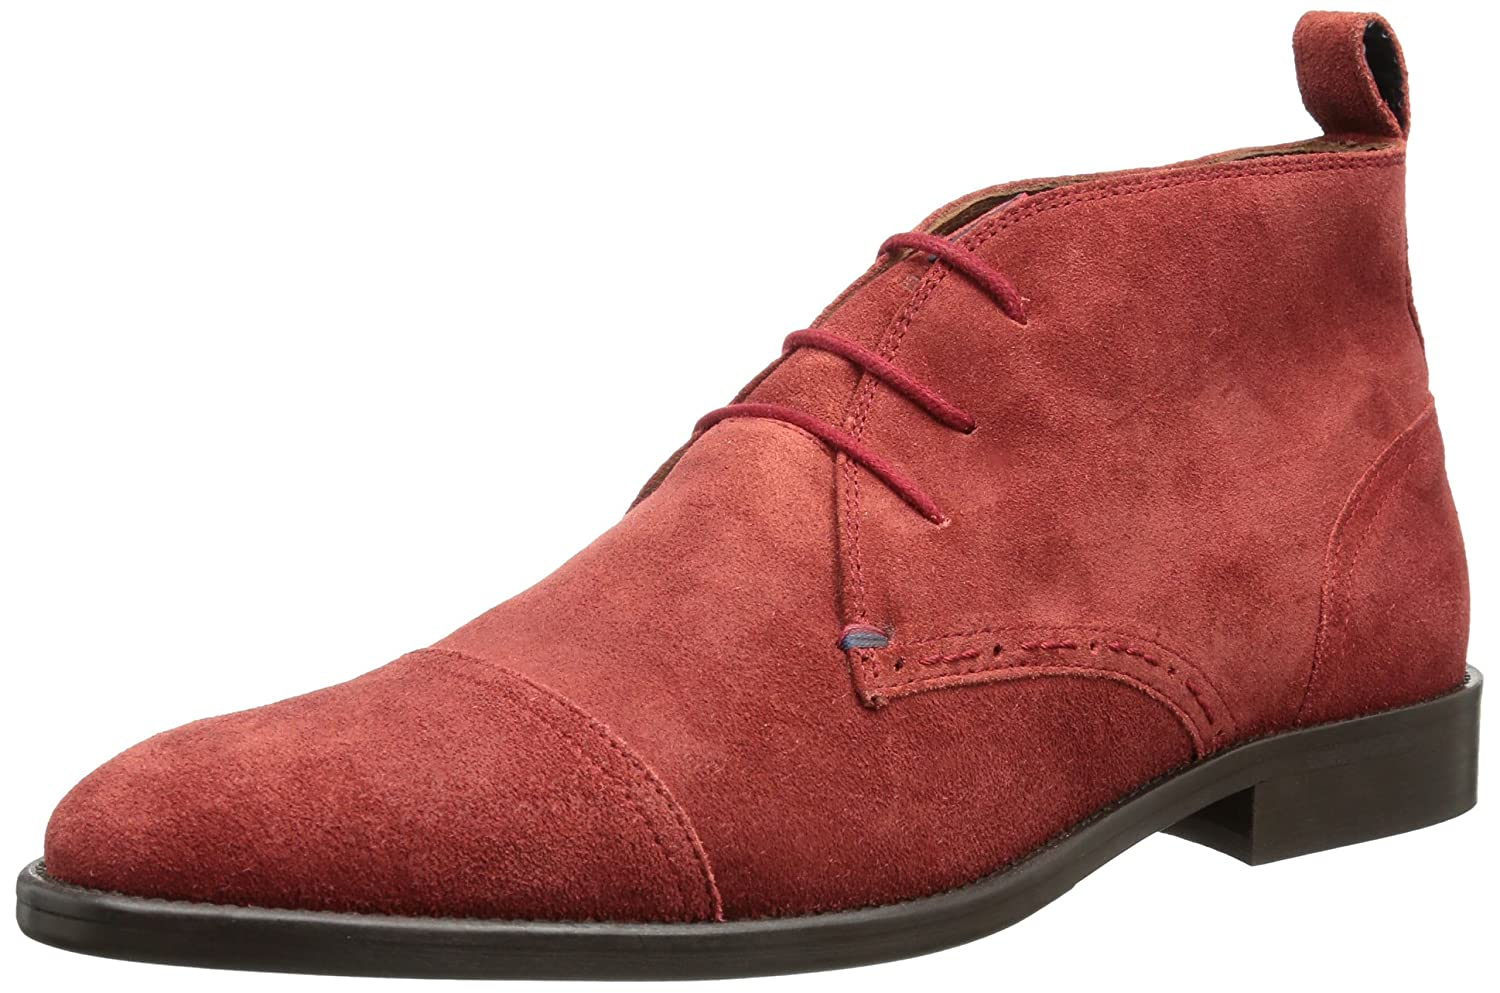 9549e715481c8 Tommy Hilfiger Mens DALTON 3B Desert Boots Red Rot (RIO RED 622) Size  41   Amazon.co.uk  Shoes   Bags